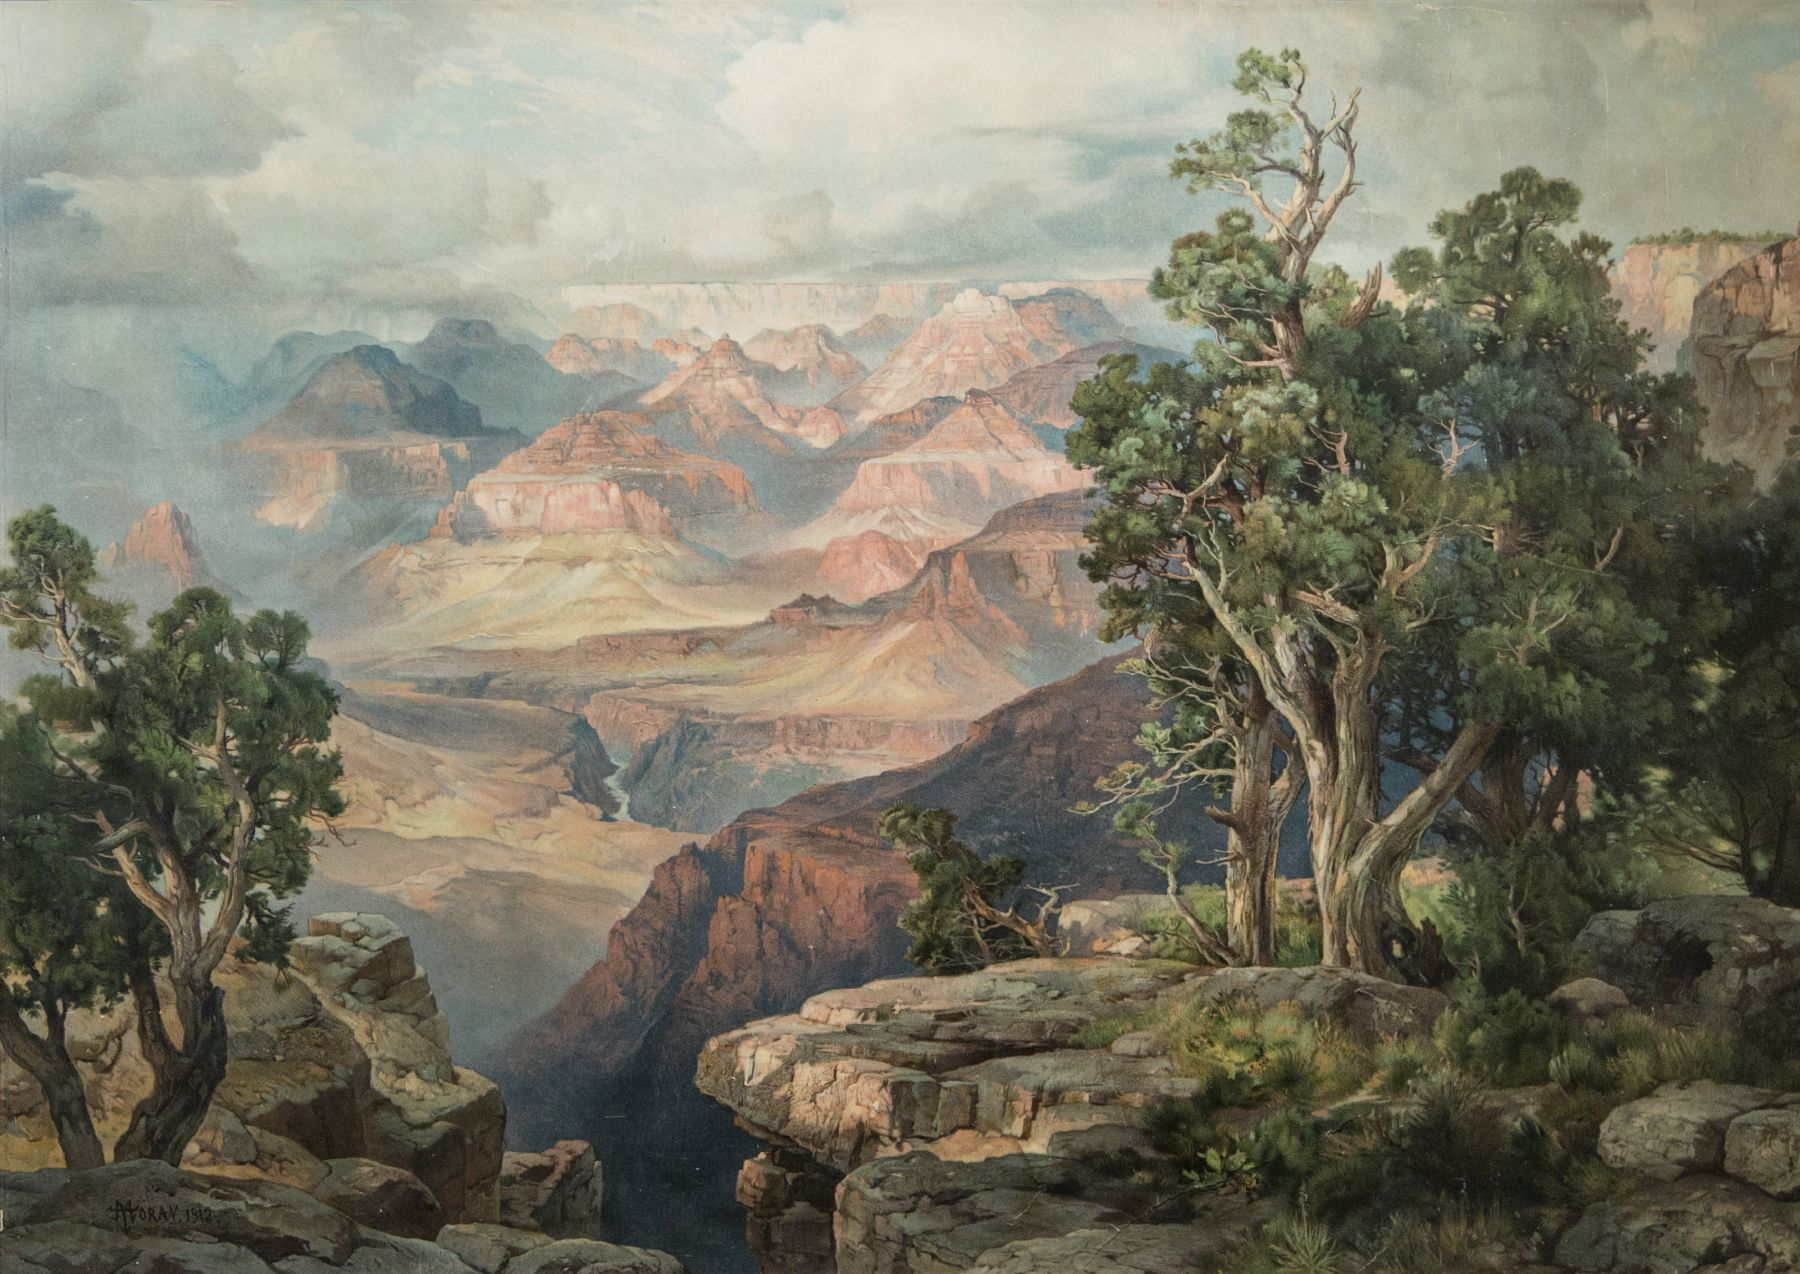 Thomas Moran, The Grand Canyon of 1912, Grand Canyon National Parks, National Parks, western art, chromolithograph